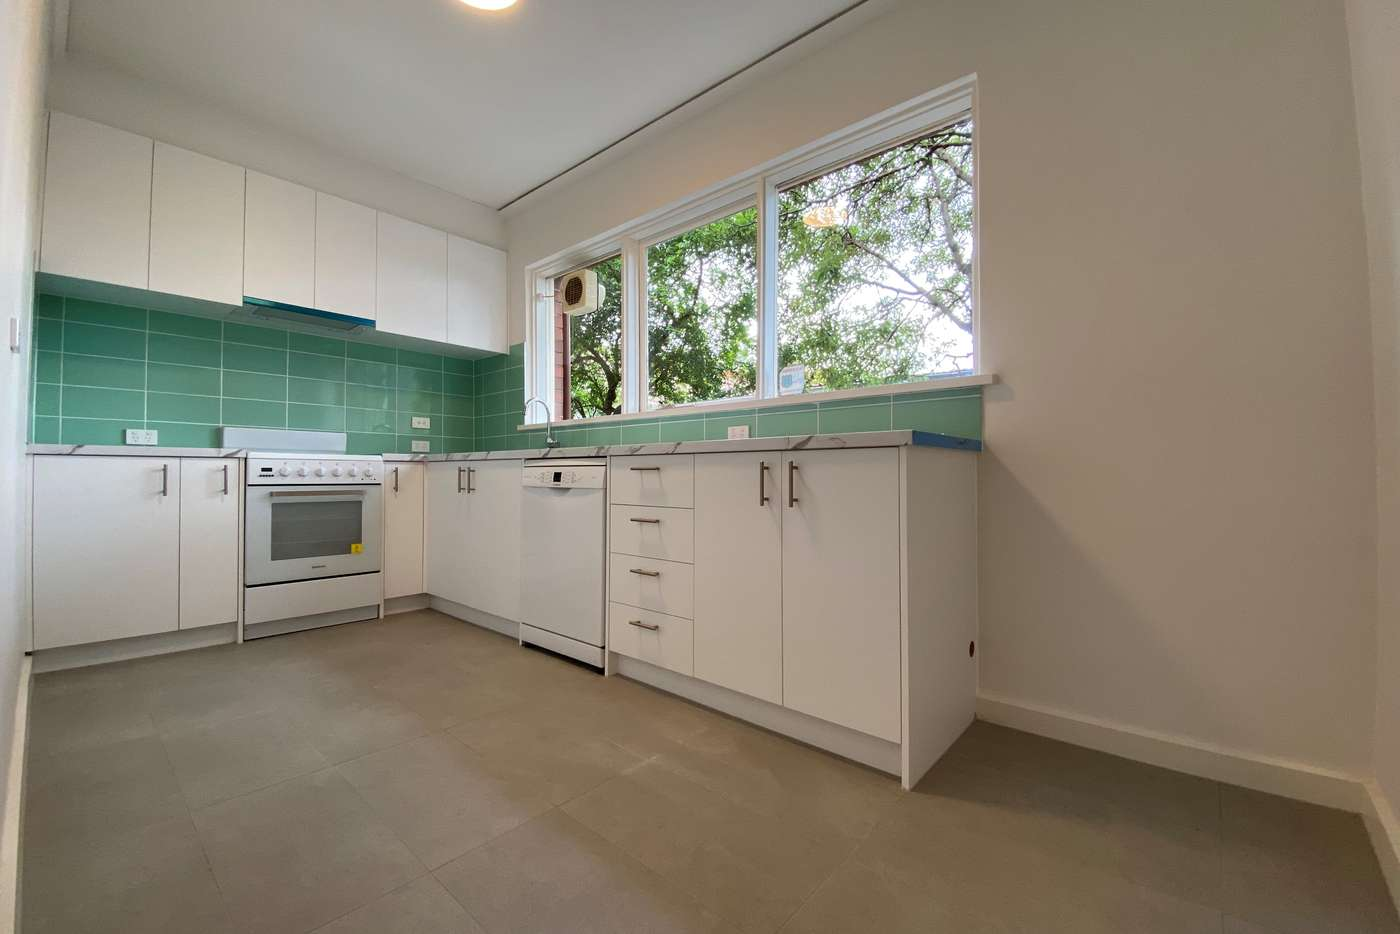 Main view of Homely apartment listing, 5/6 Camira Street, Malvern East VIC 3145